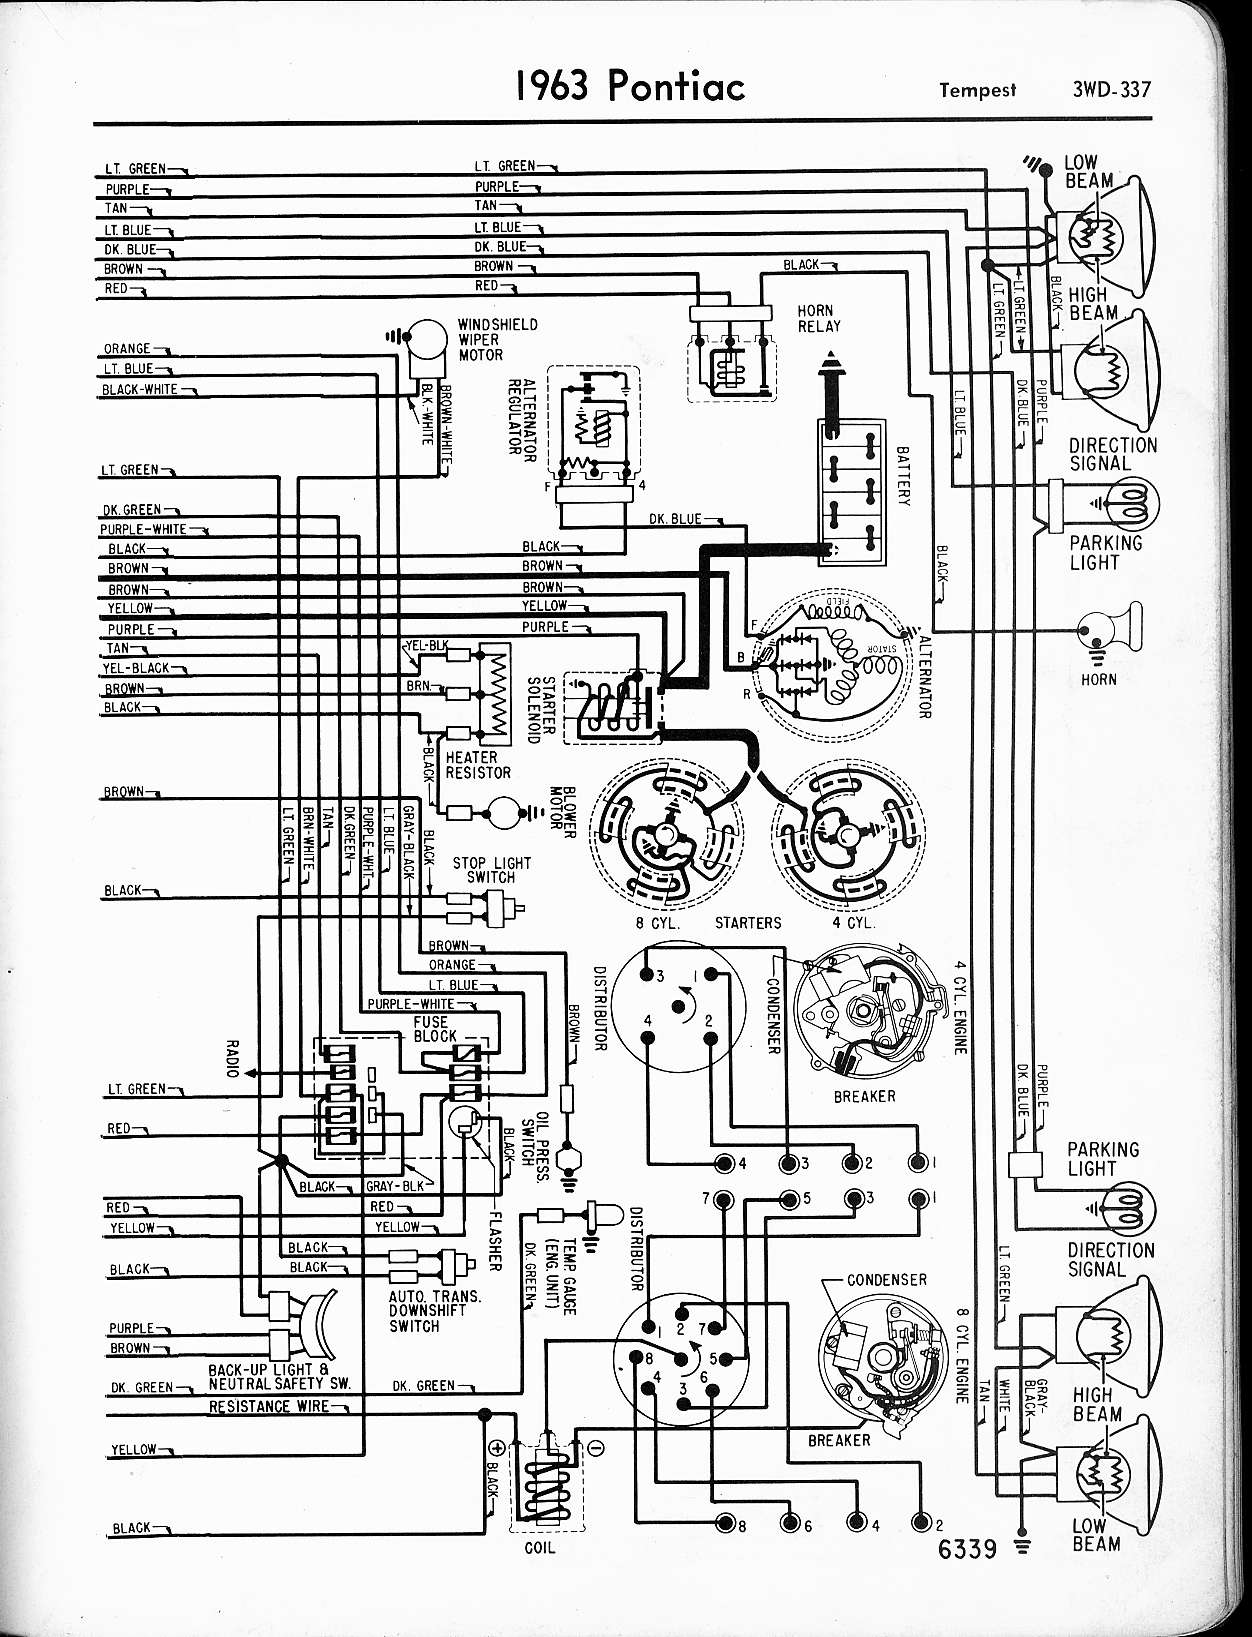 64 Impala Wiring Diagram Manual Diagrams Schema 1995 Jaguar Xj6 Simple 2000 Corvette